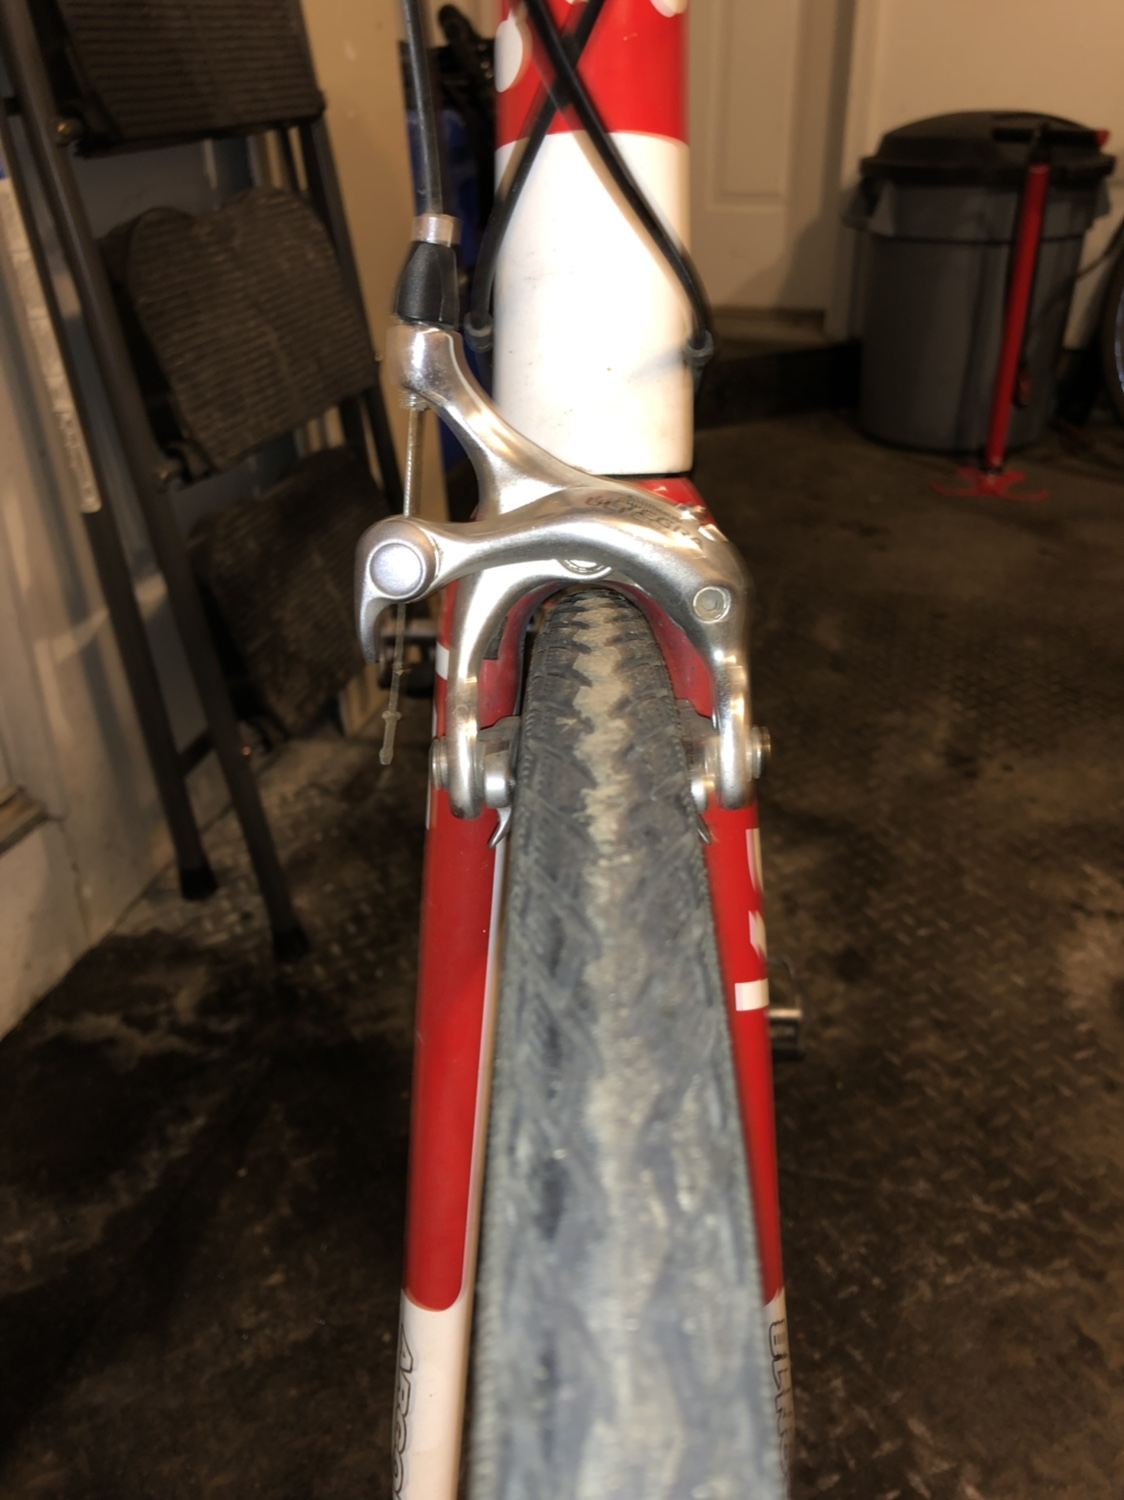 rear caliper with best clearance? - Page 2 - The Paceline Forum